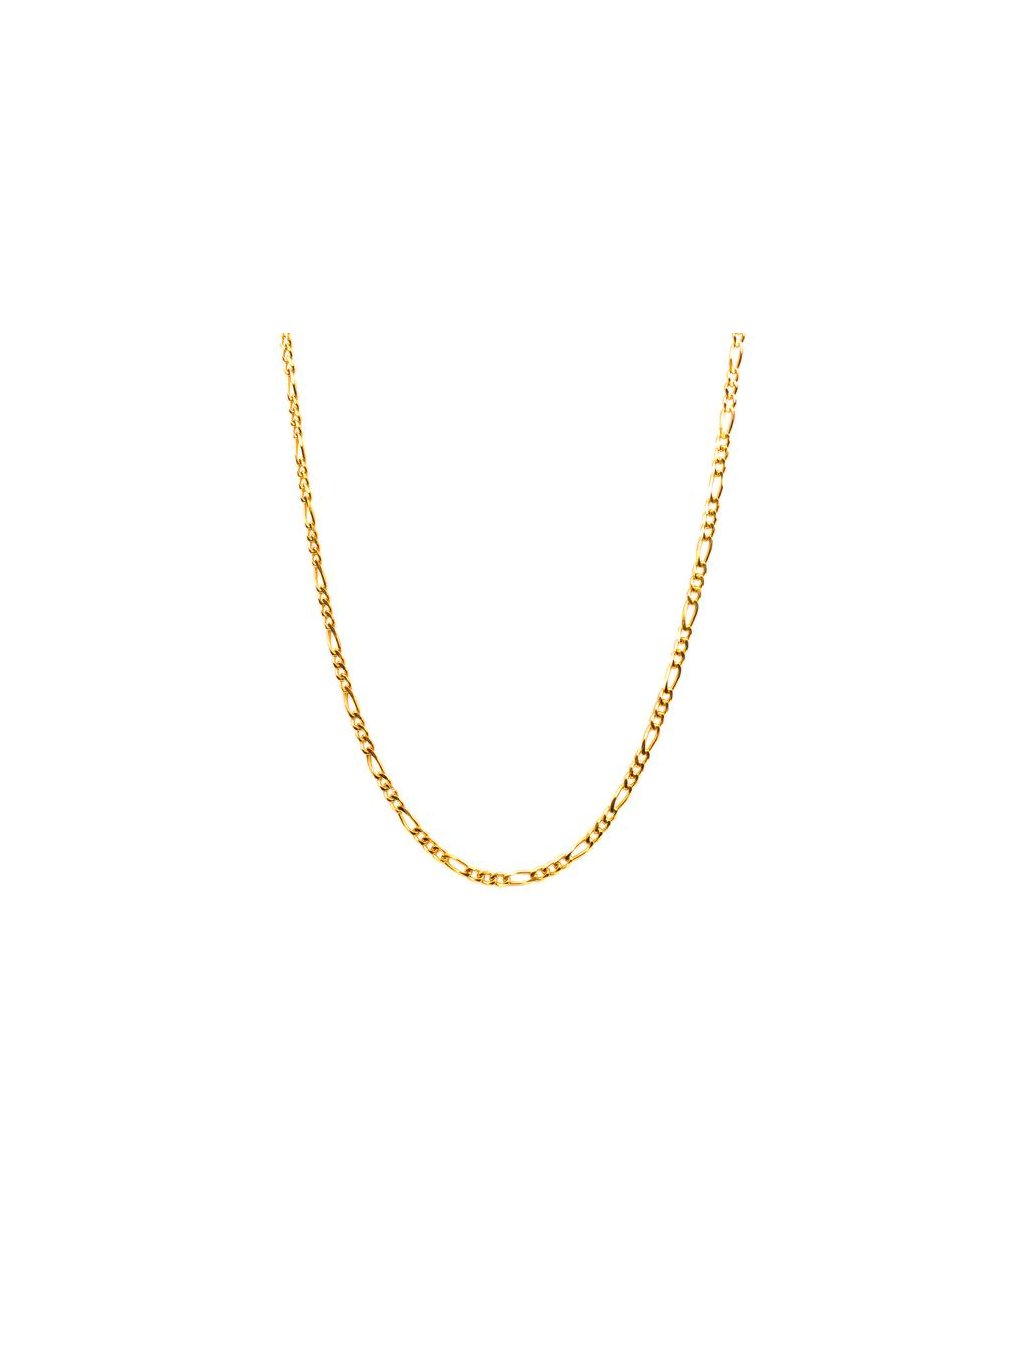 01 necklace YGP 700x